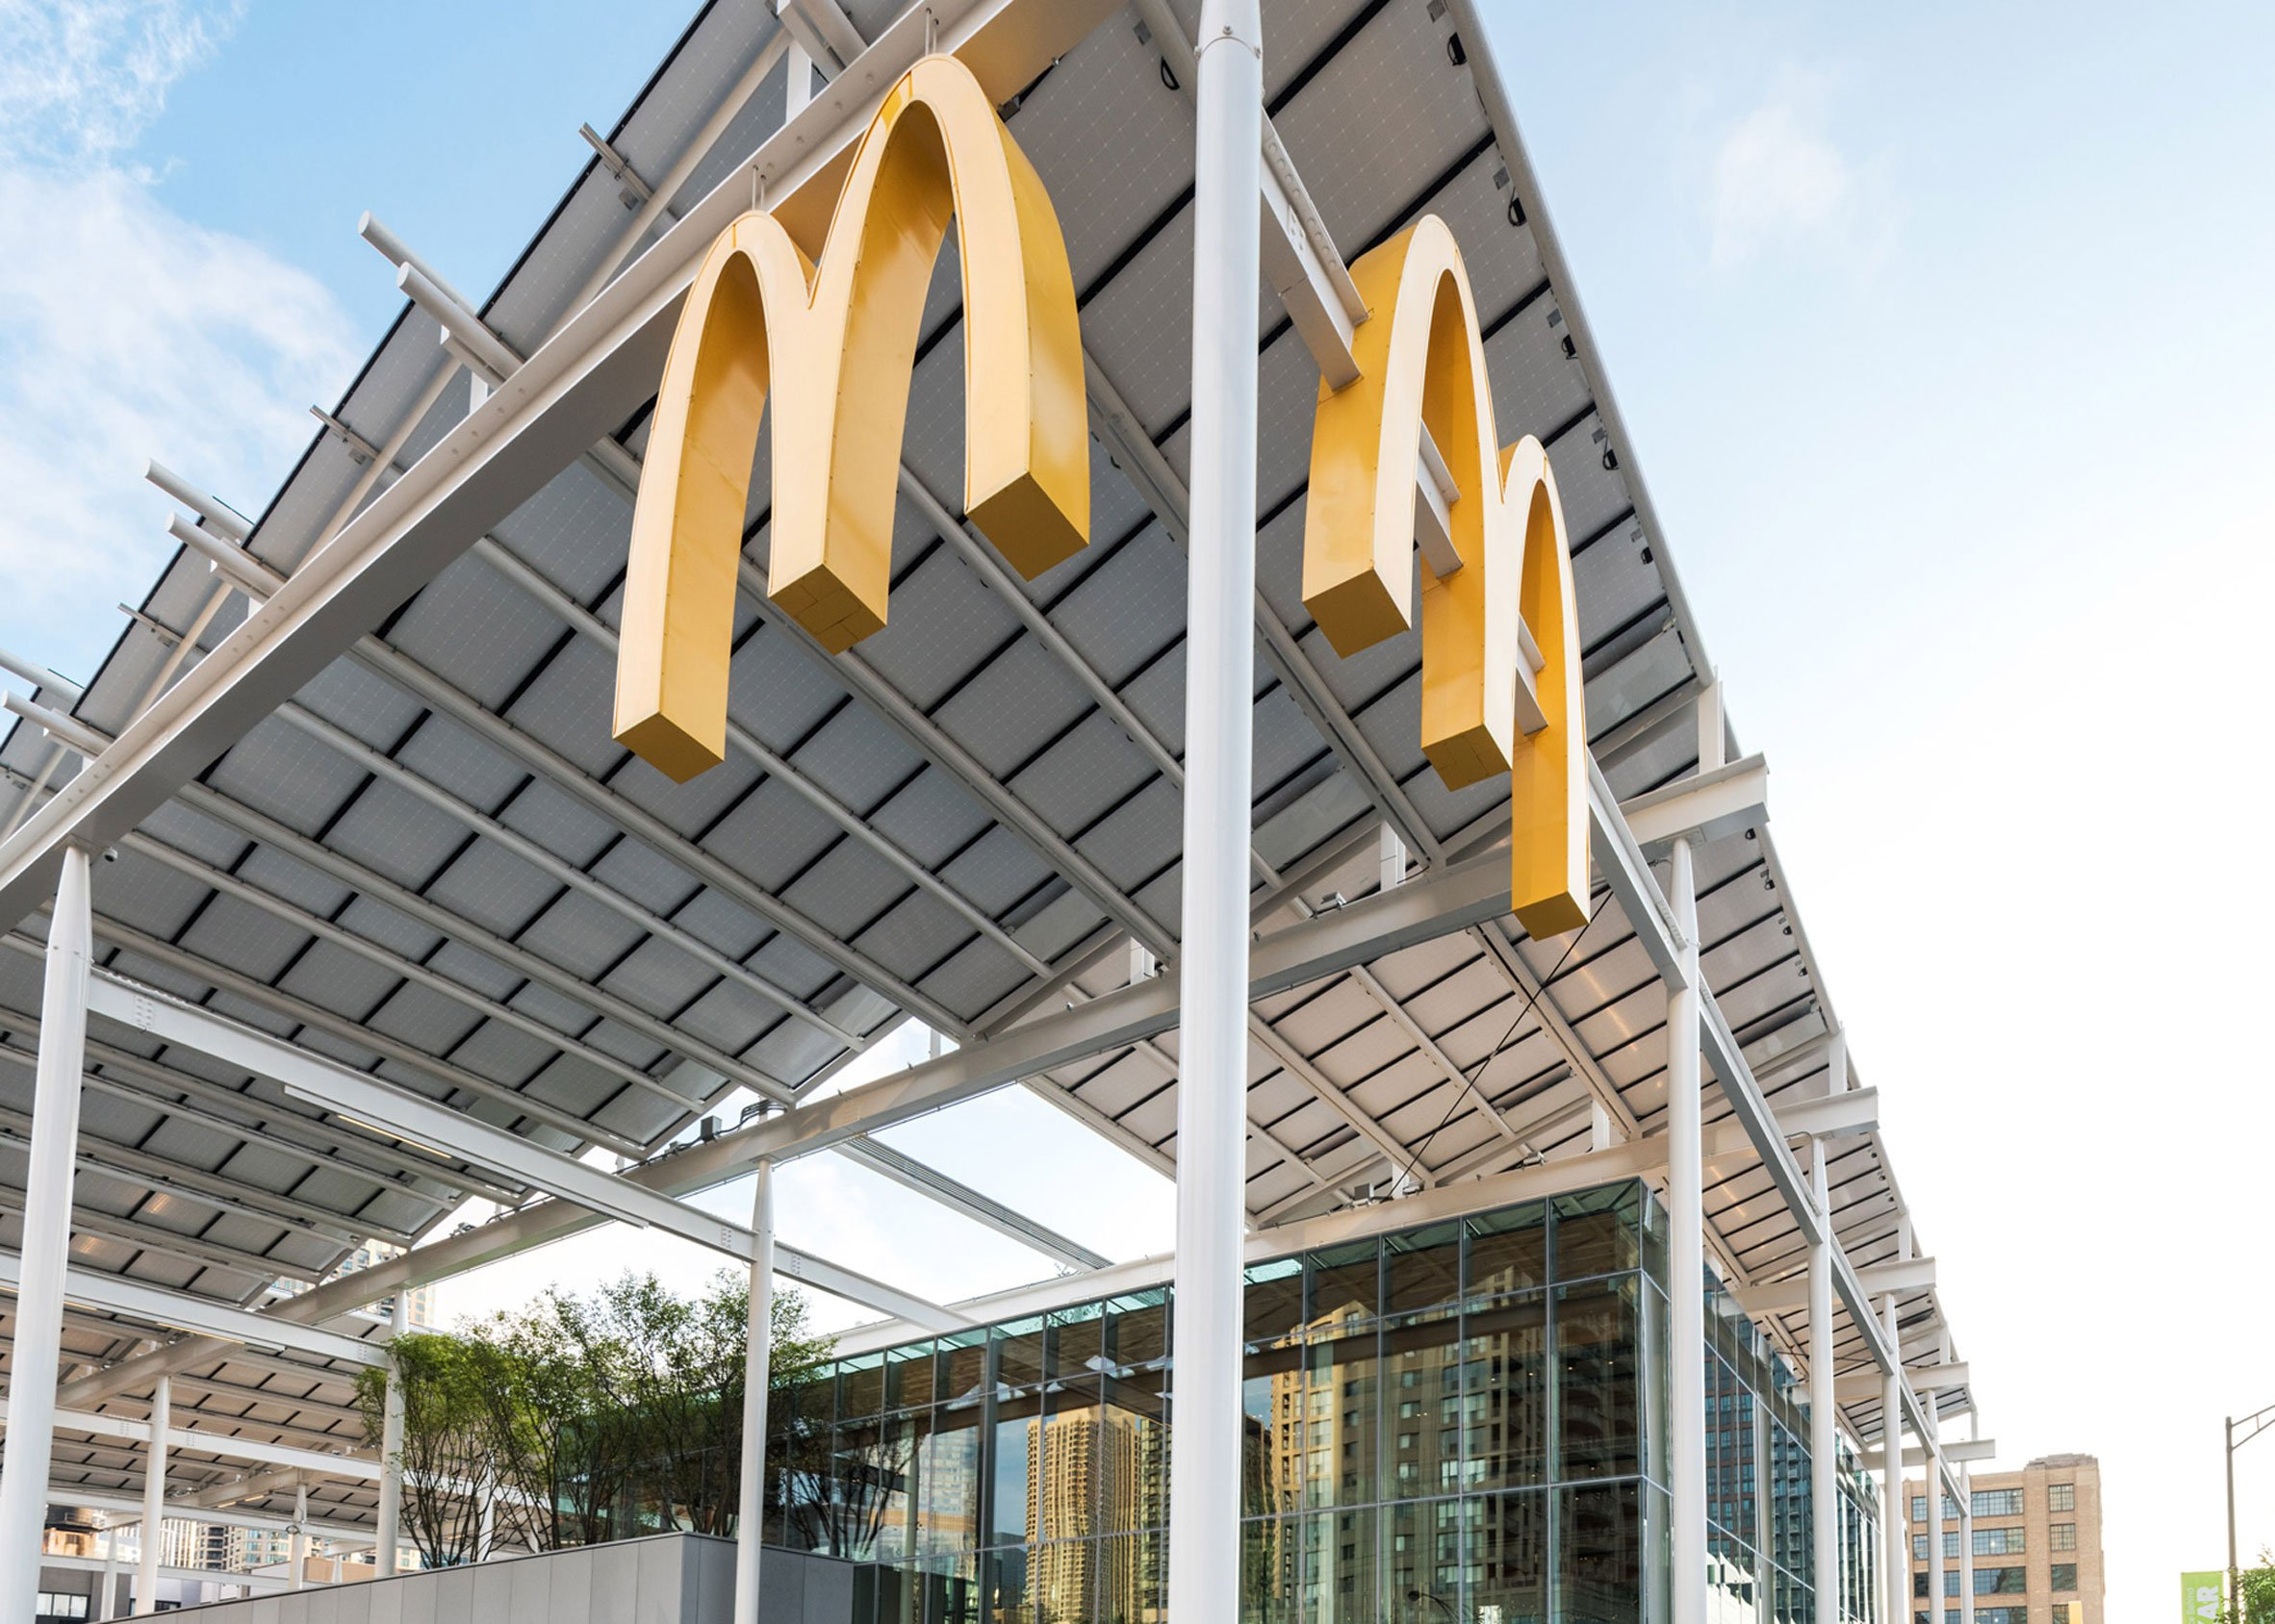 McDonald's Chicago Flagship by Ross Barney Architects